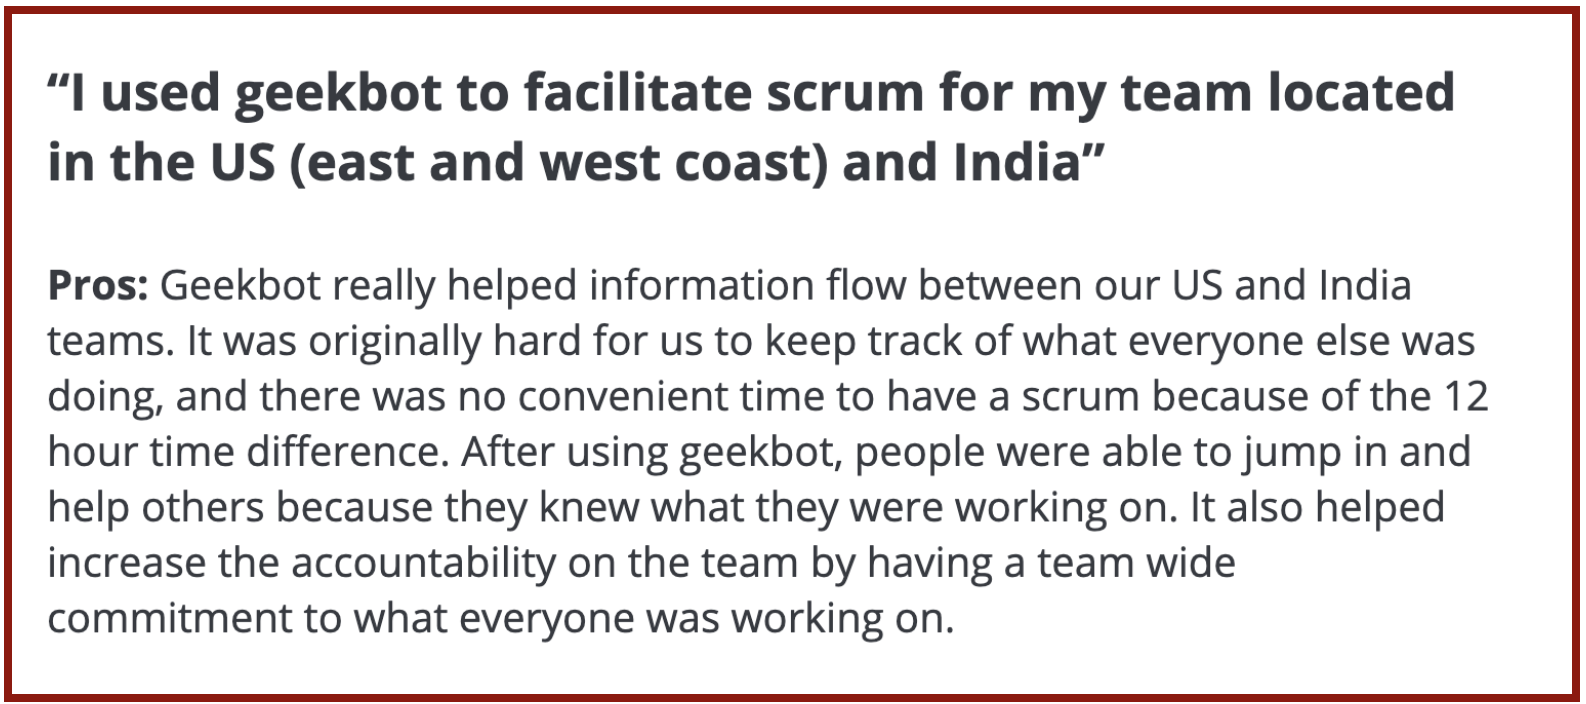 """""""I used Geekbot to facilitate scrum for my team located in the US (east and west coast) and India."""""""